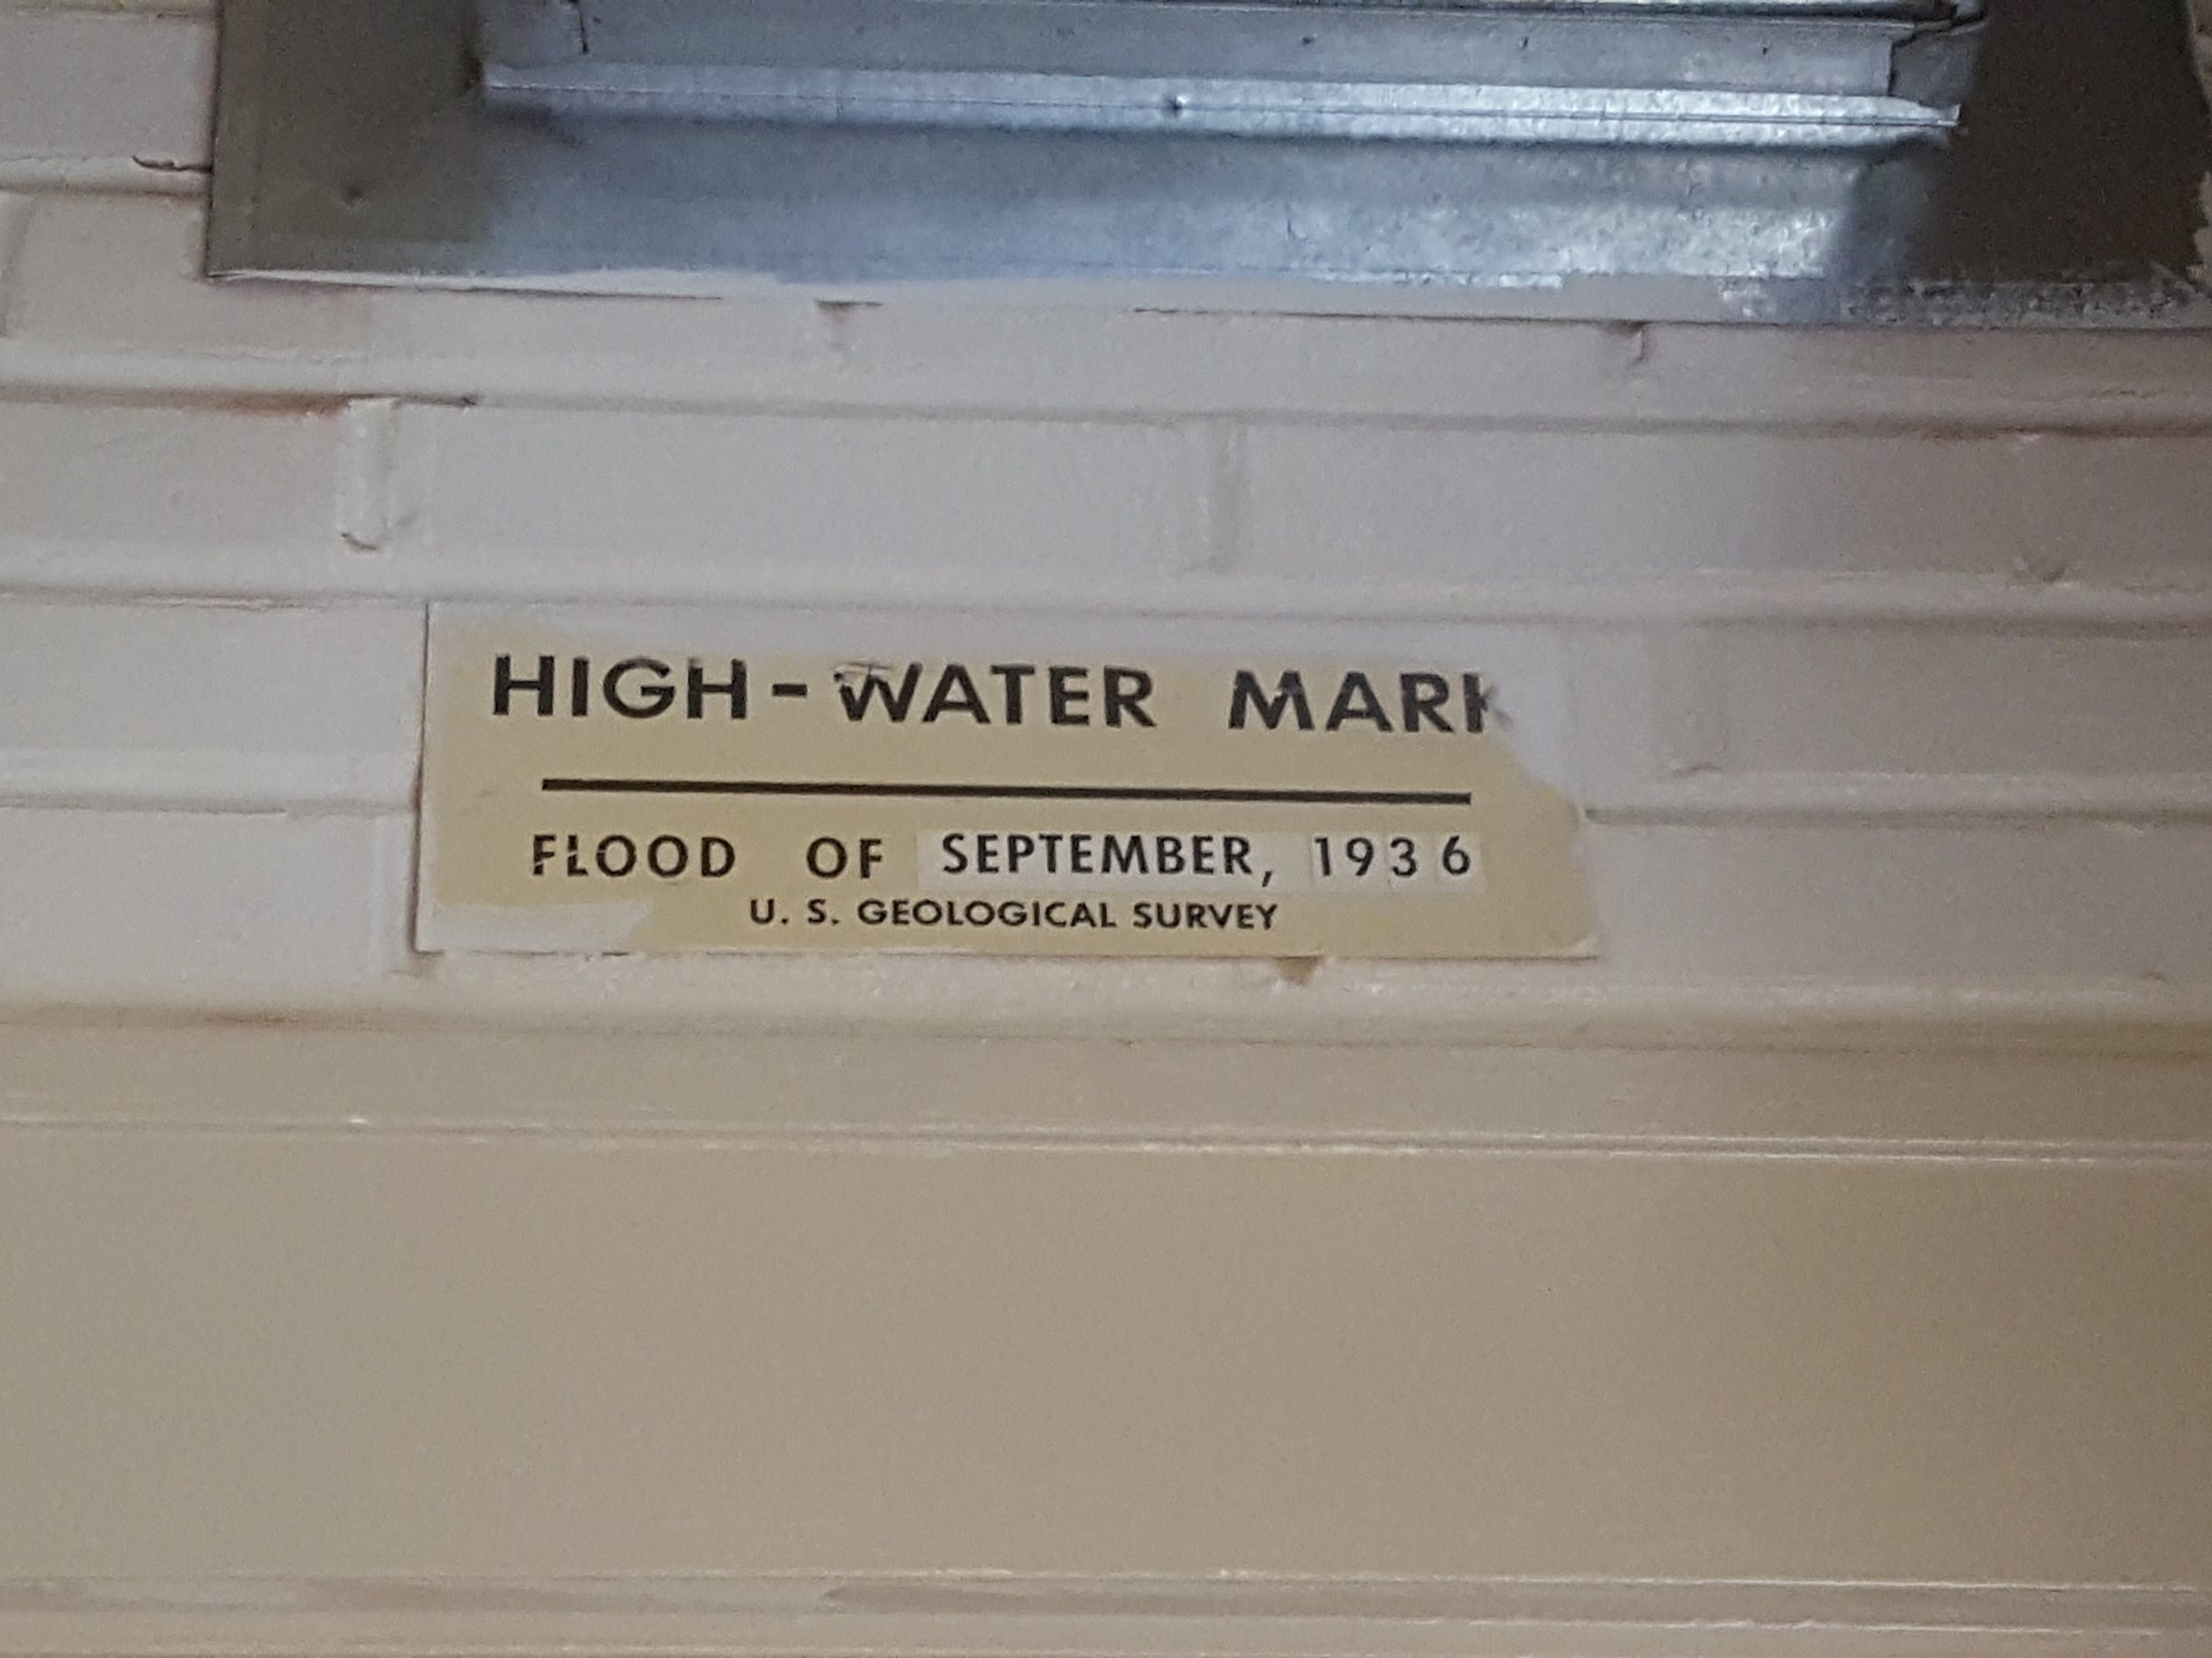 High water mark sign posted above the front door at 200 S Magdalen St, after the flood of September 1936.